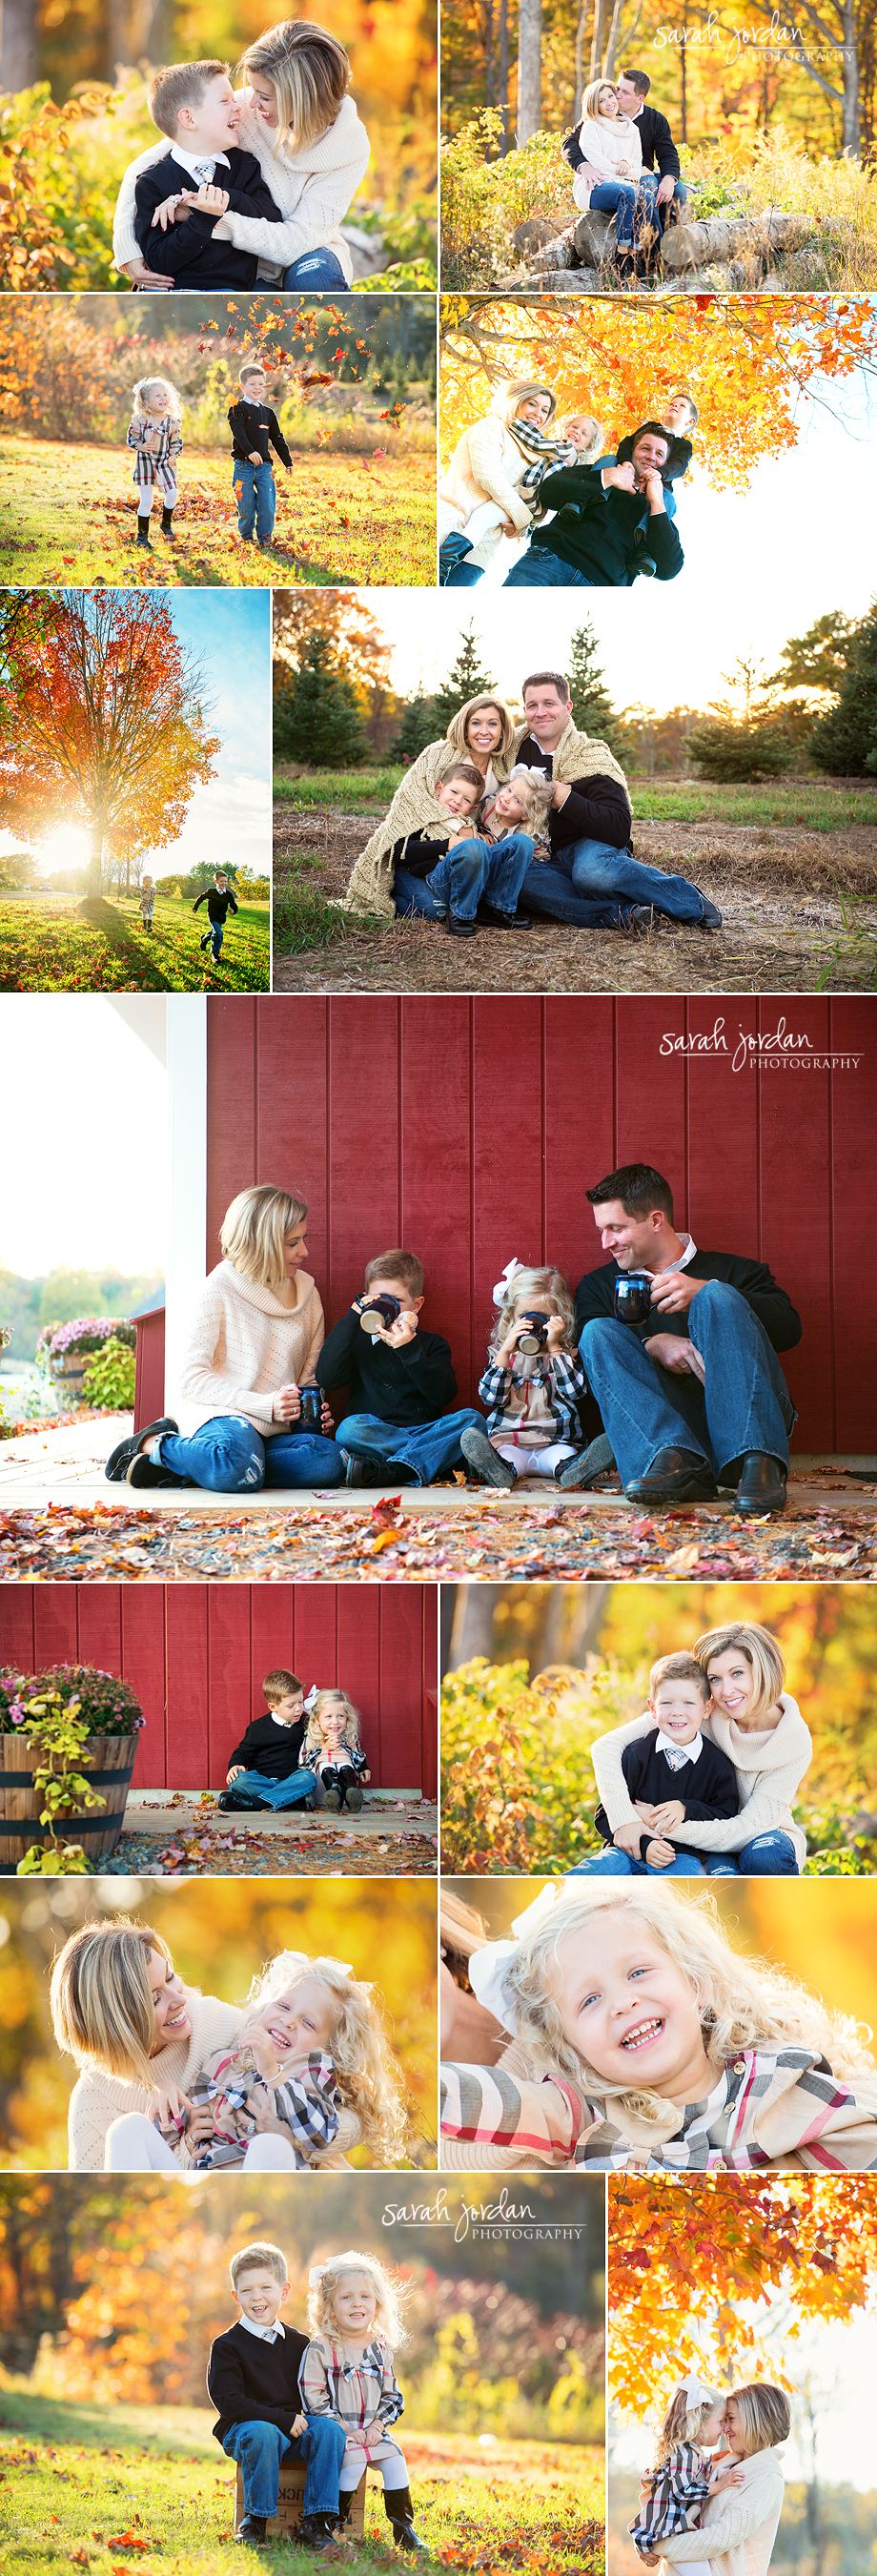 North Andover Kids Photographer 2